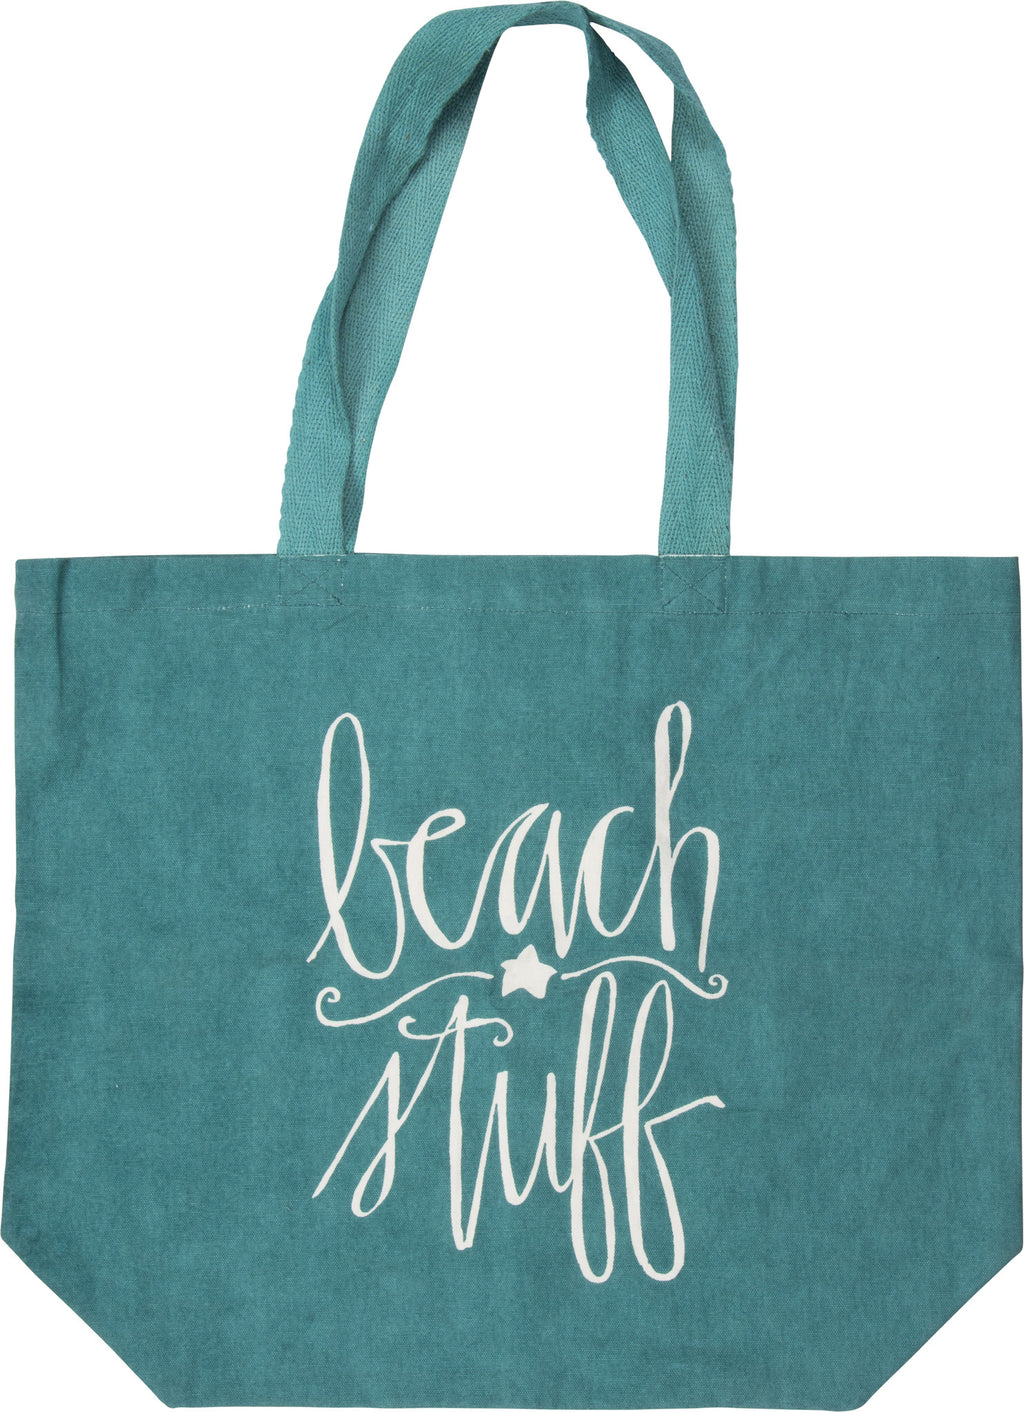 beach bag canvas turquoise tote